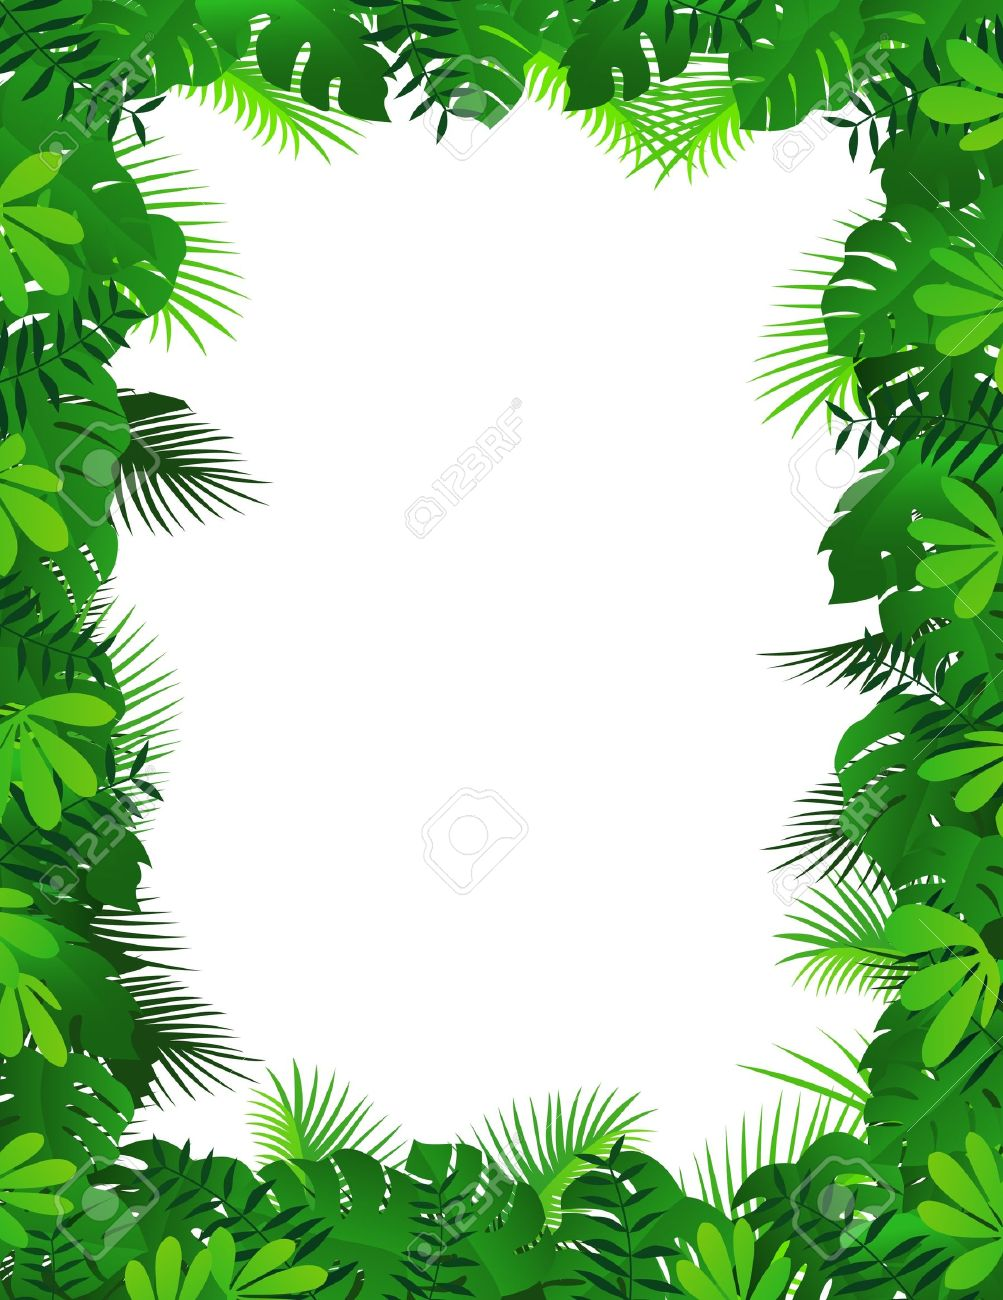 Cliparts making the web. Frame clipart forest